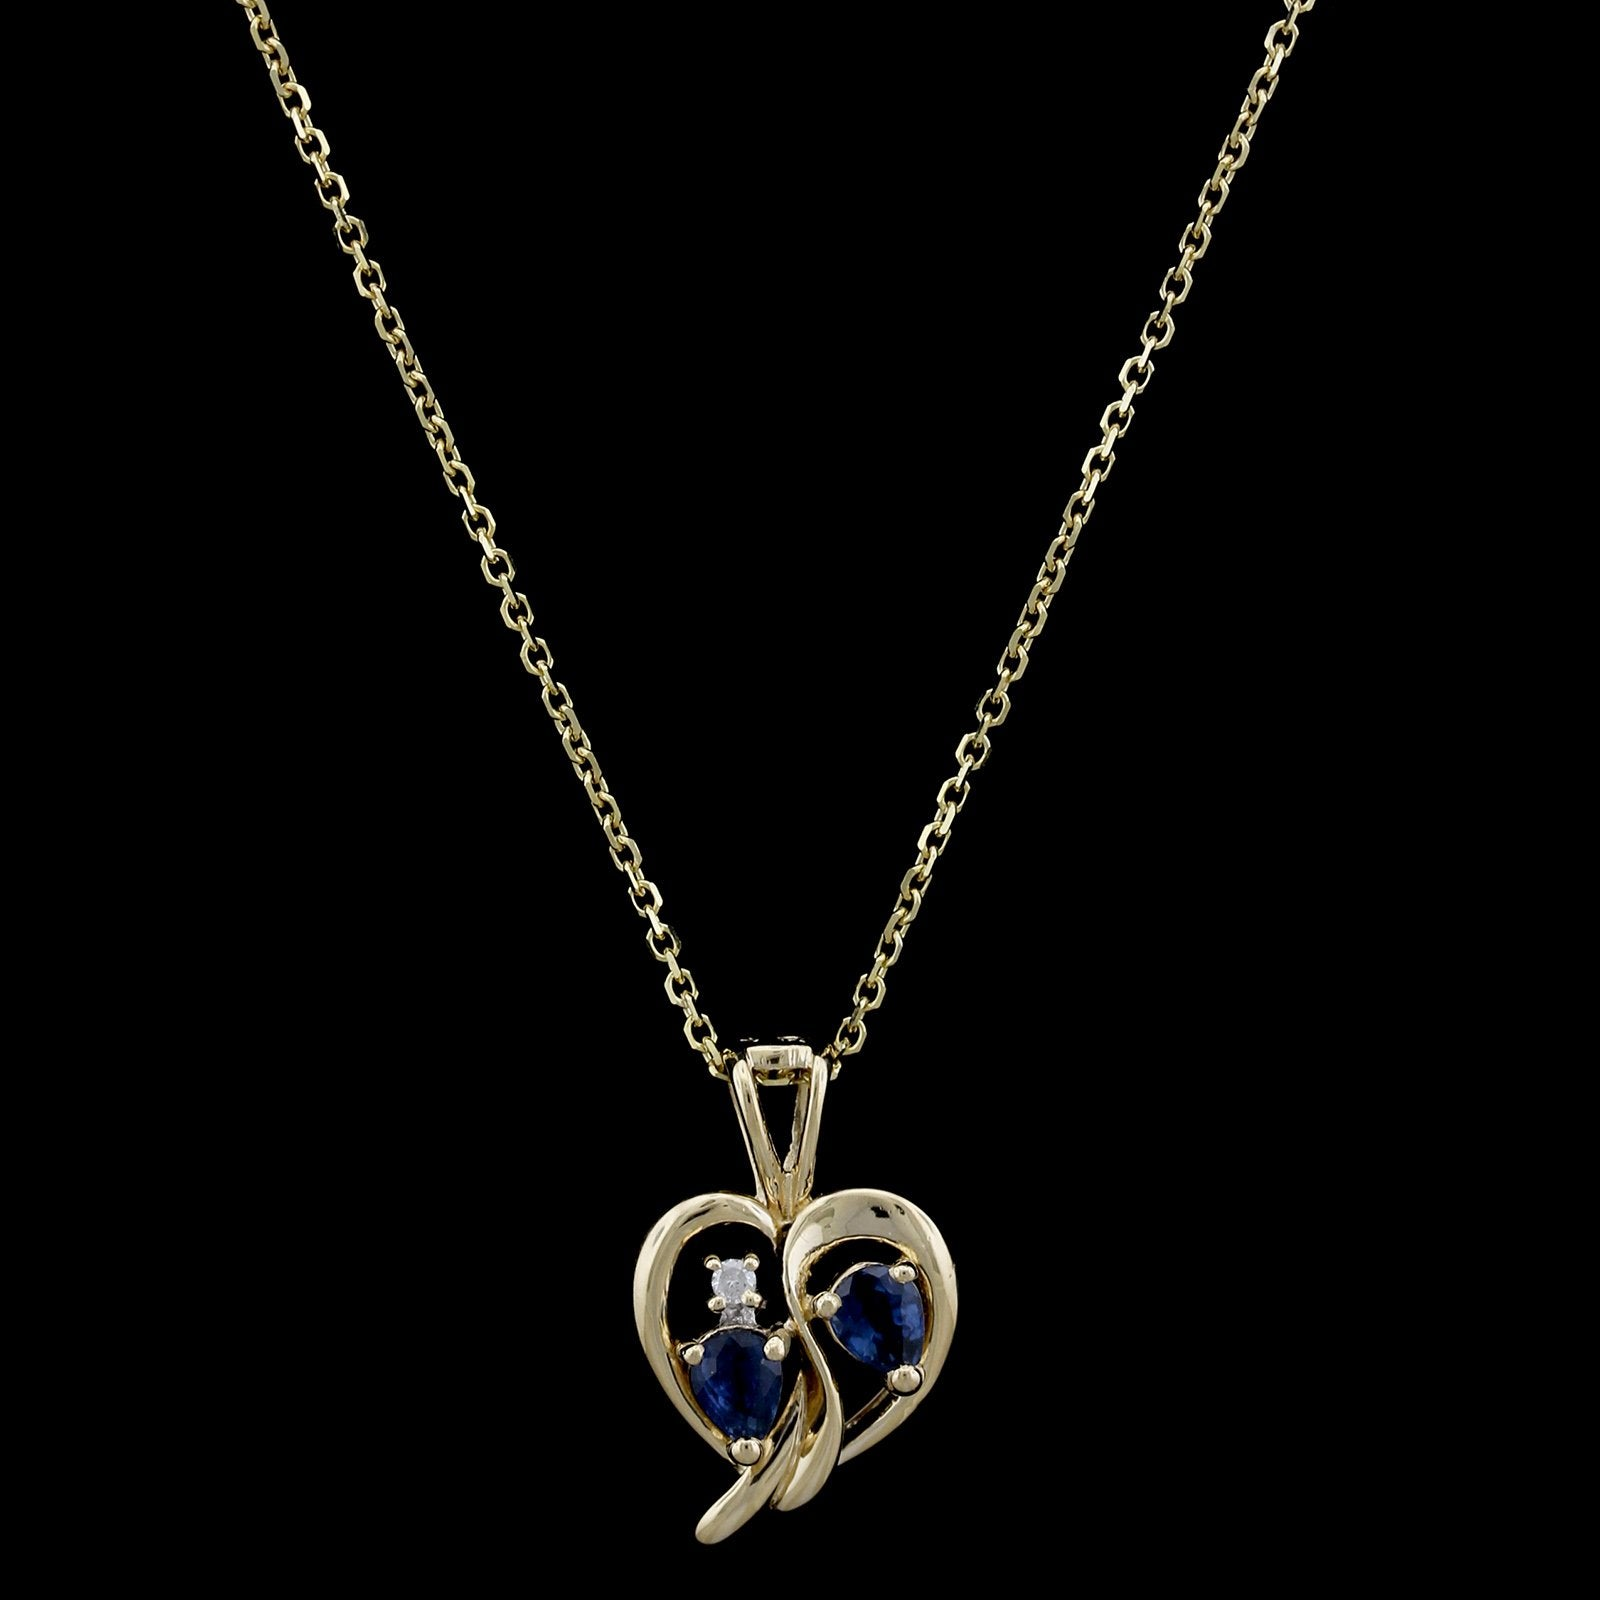 14K Yellow Gold Estate Sapphire and Diamond Heart Pendant